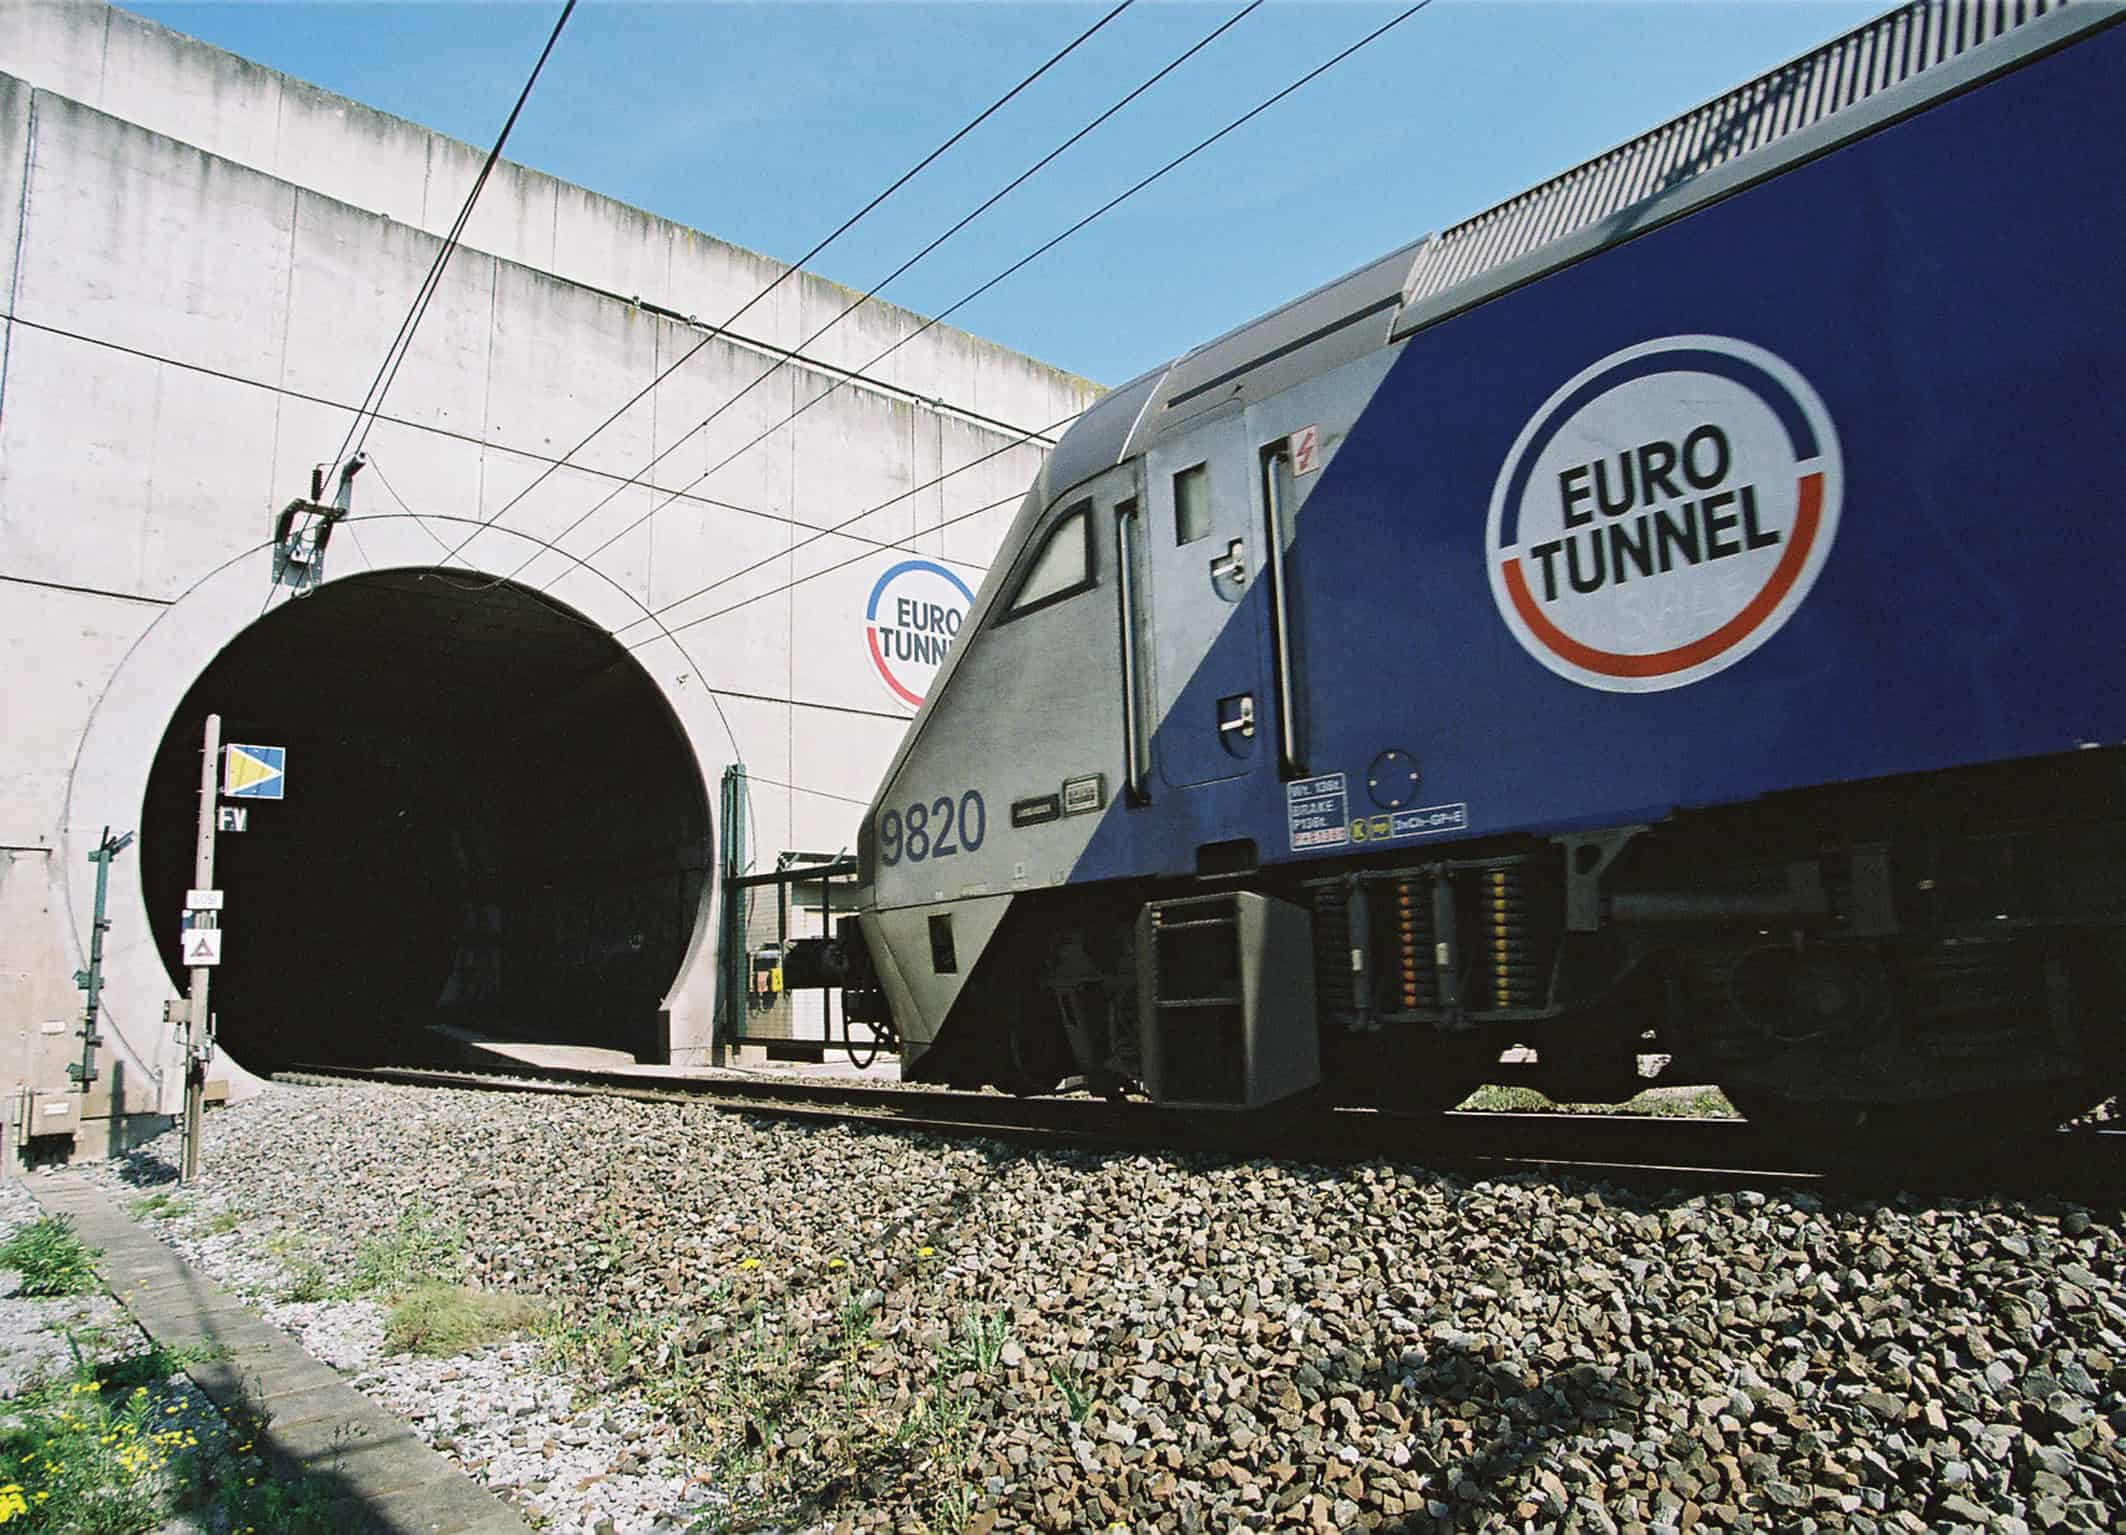 Eurotunnel announces order for new freight shuttles